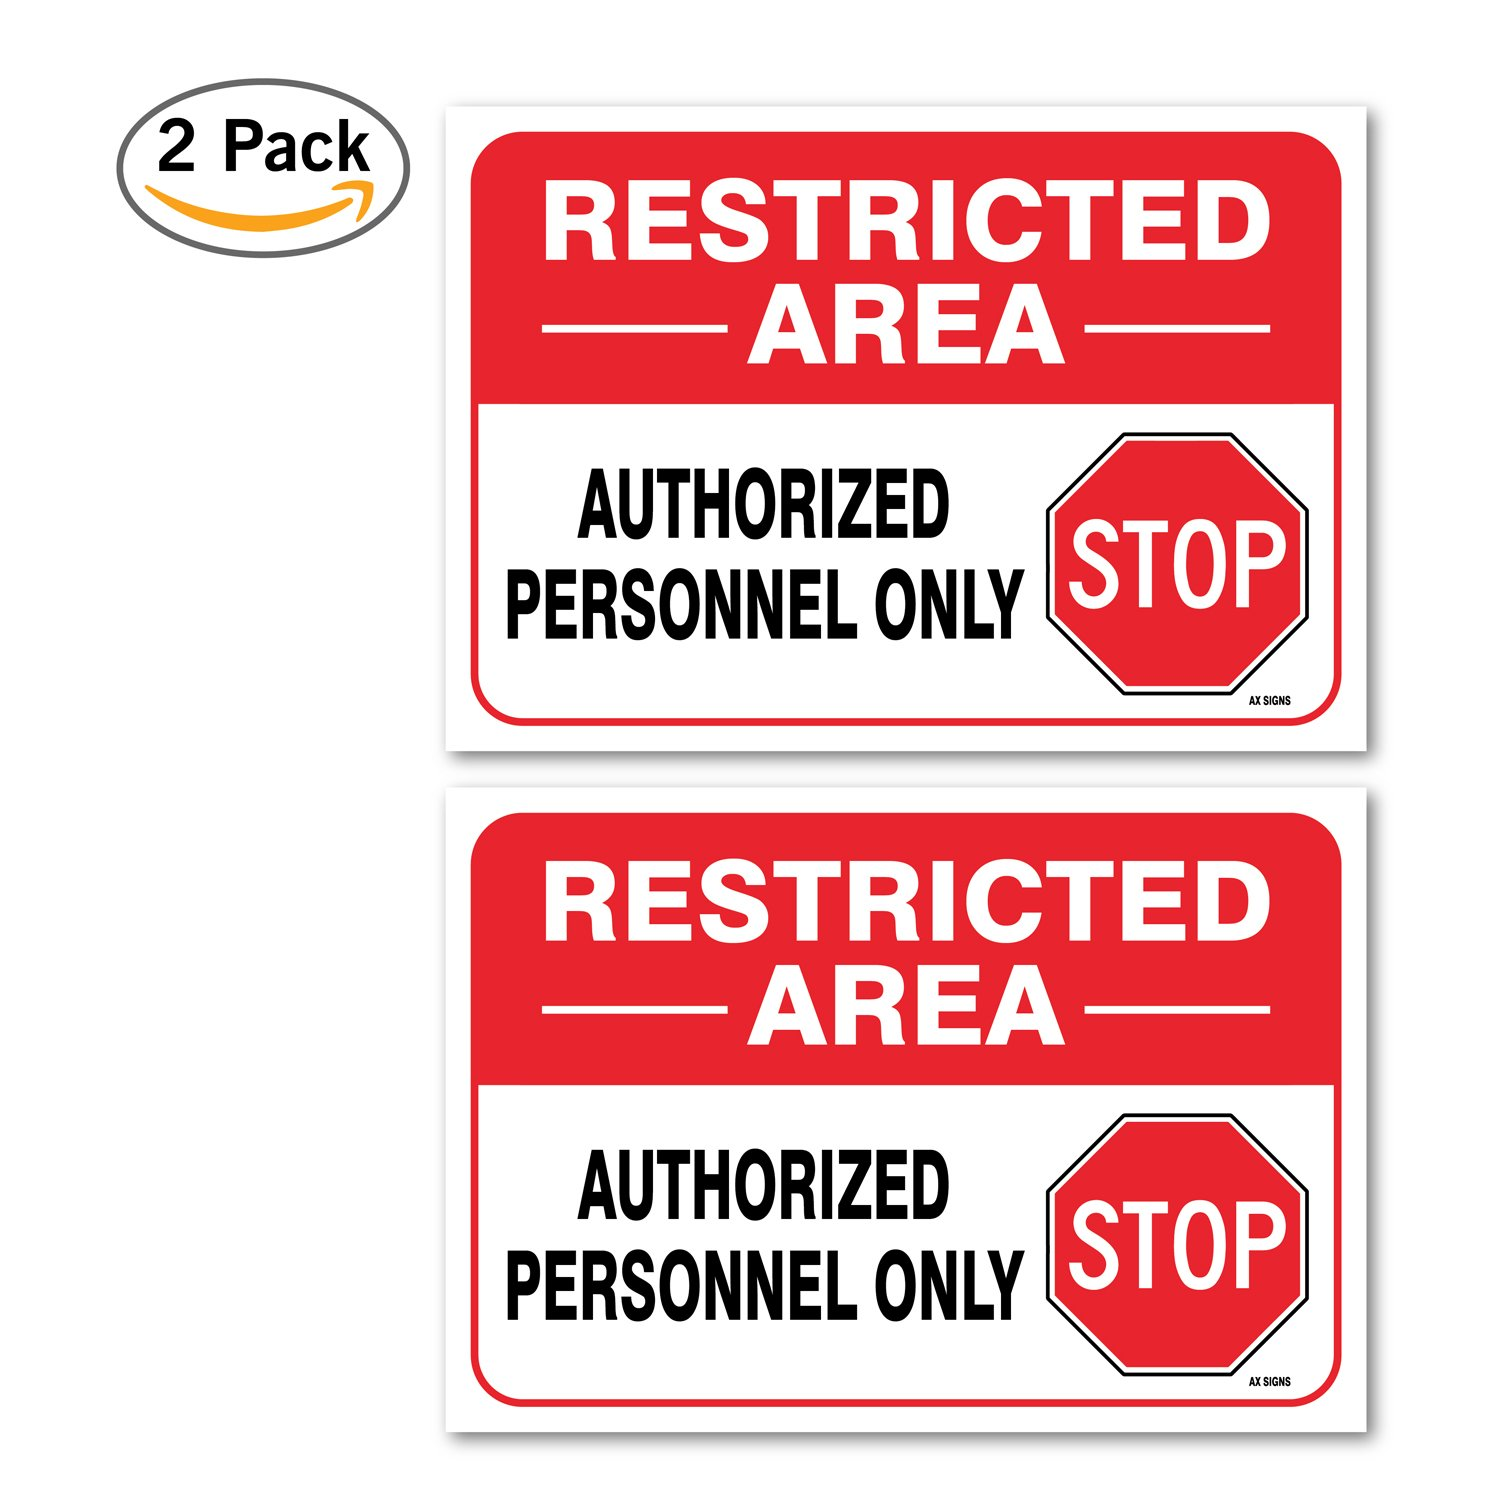 Amazon com 2 pack restricted area sign large 10 x 7 inch vinyl stickers indoor and outdoor use rust free uv protected waterproof self adhesive